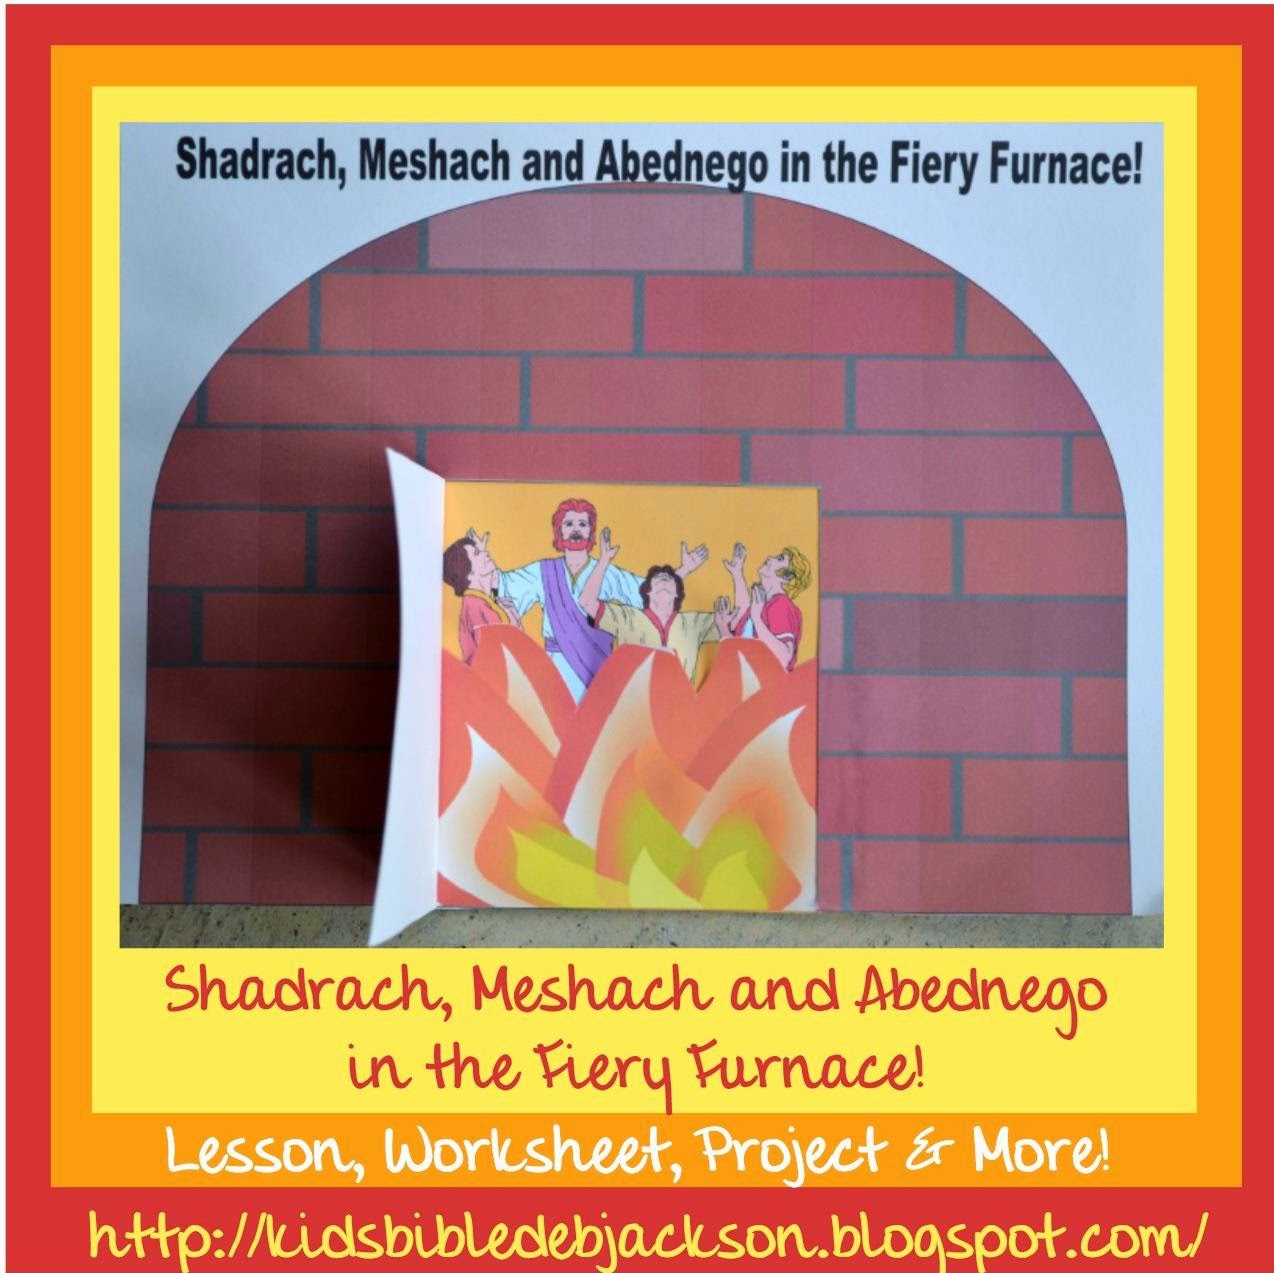 http://kidsbibledebjackson.blogspot.com/2014/05/shadrach-meshach-and-abednego-fiery.html